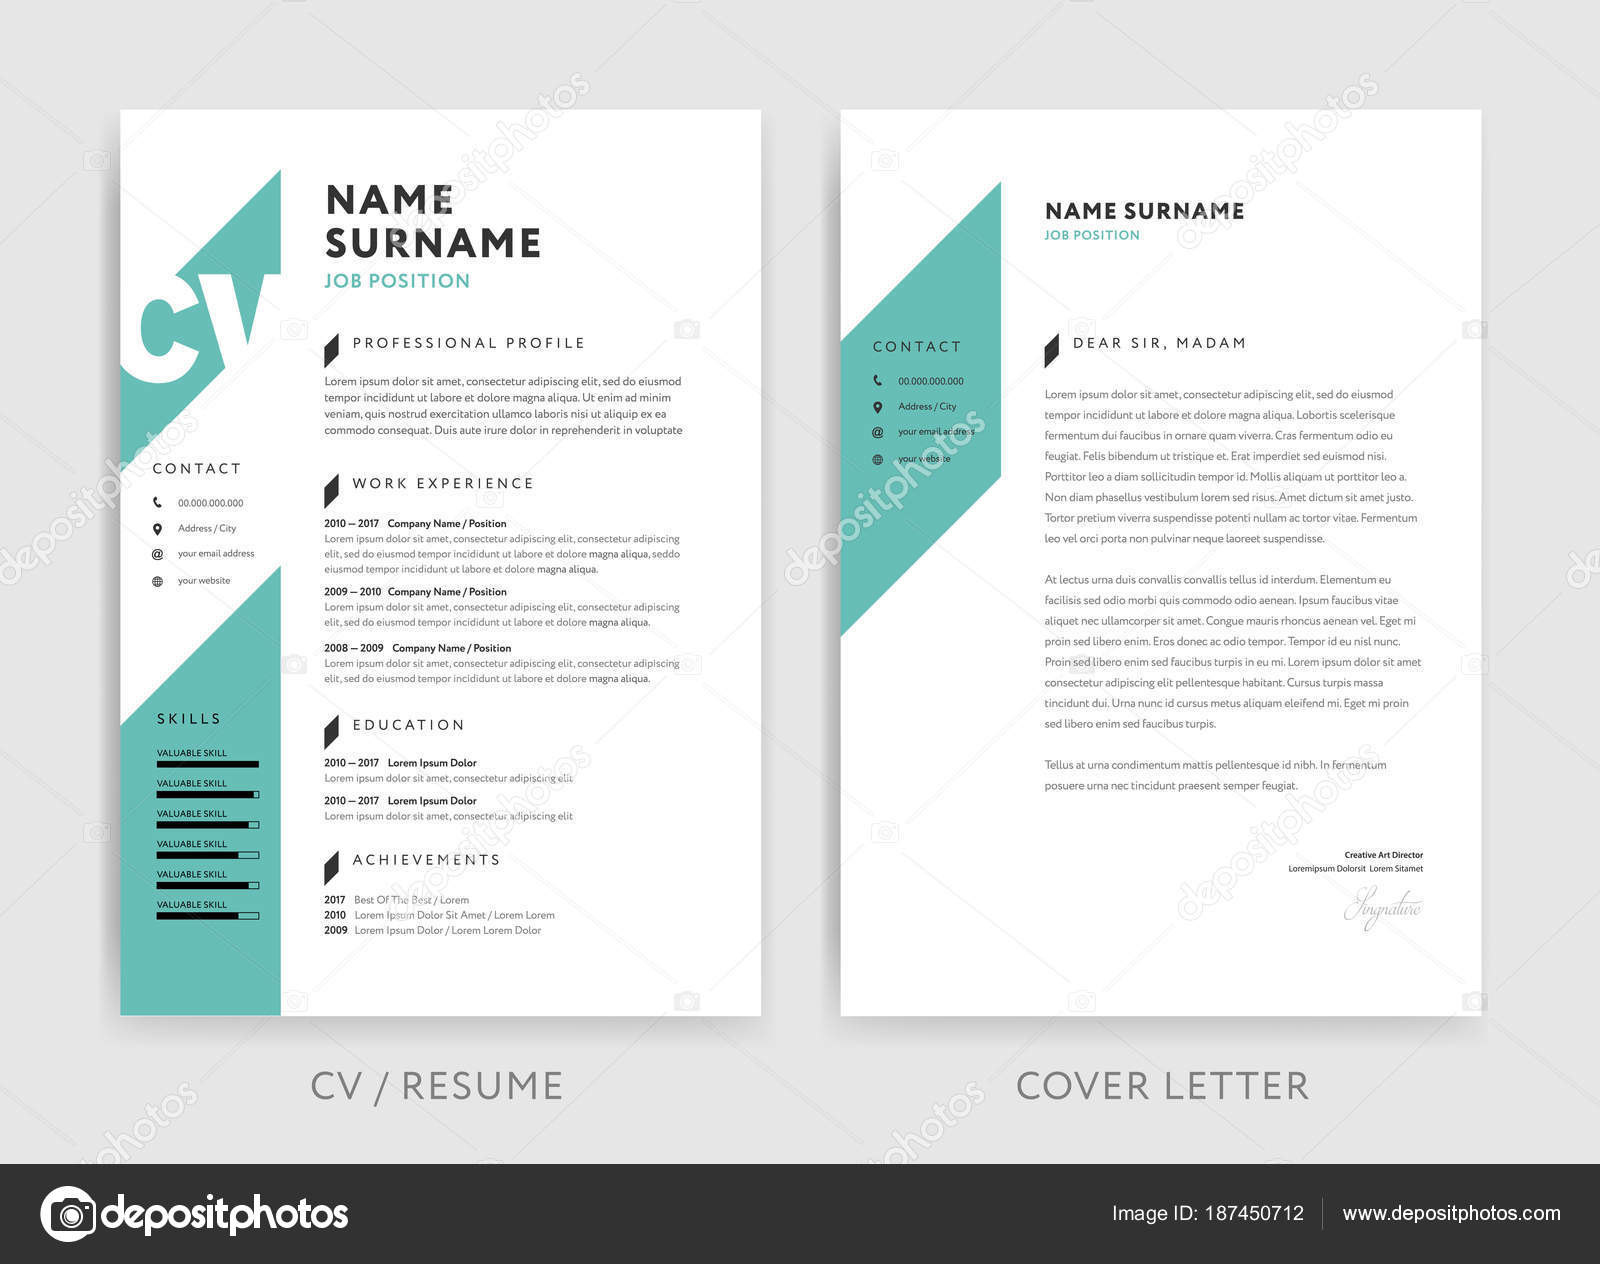 Creative Cv Resume Template Teal Green Background Color Minima Stock Vector C Forestgraphic 187450712